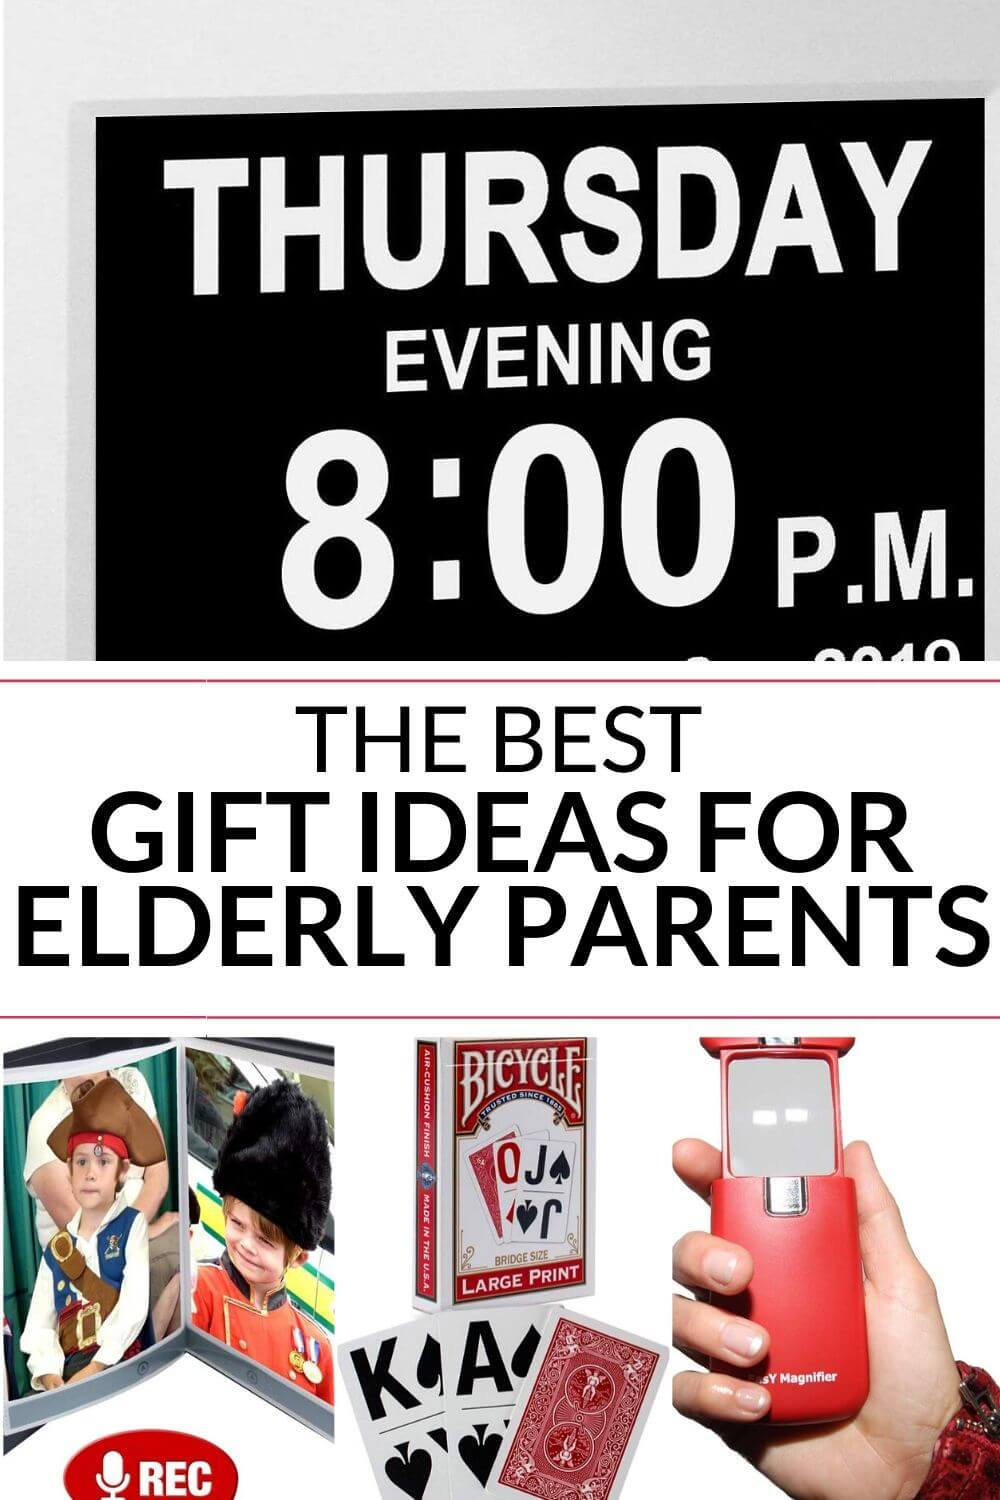 Gifts for elderly parents can be difficult - especially ...